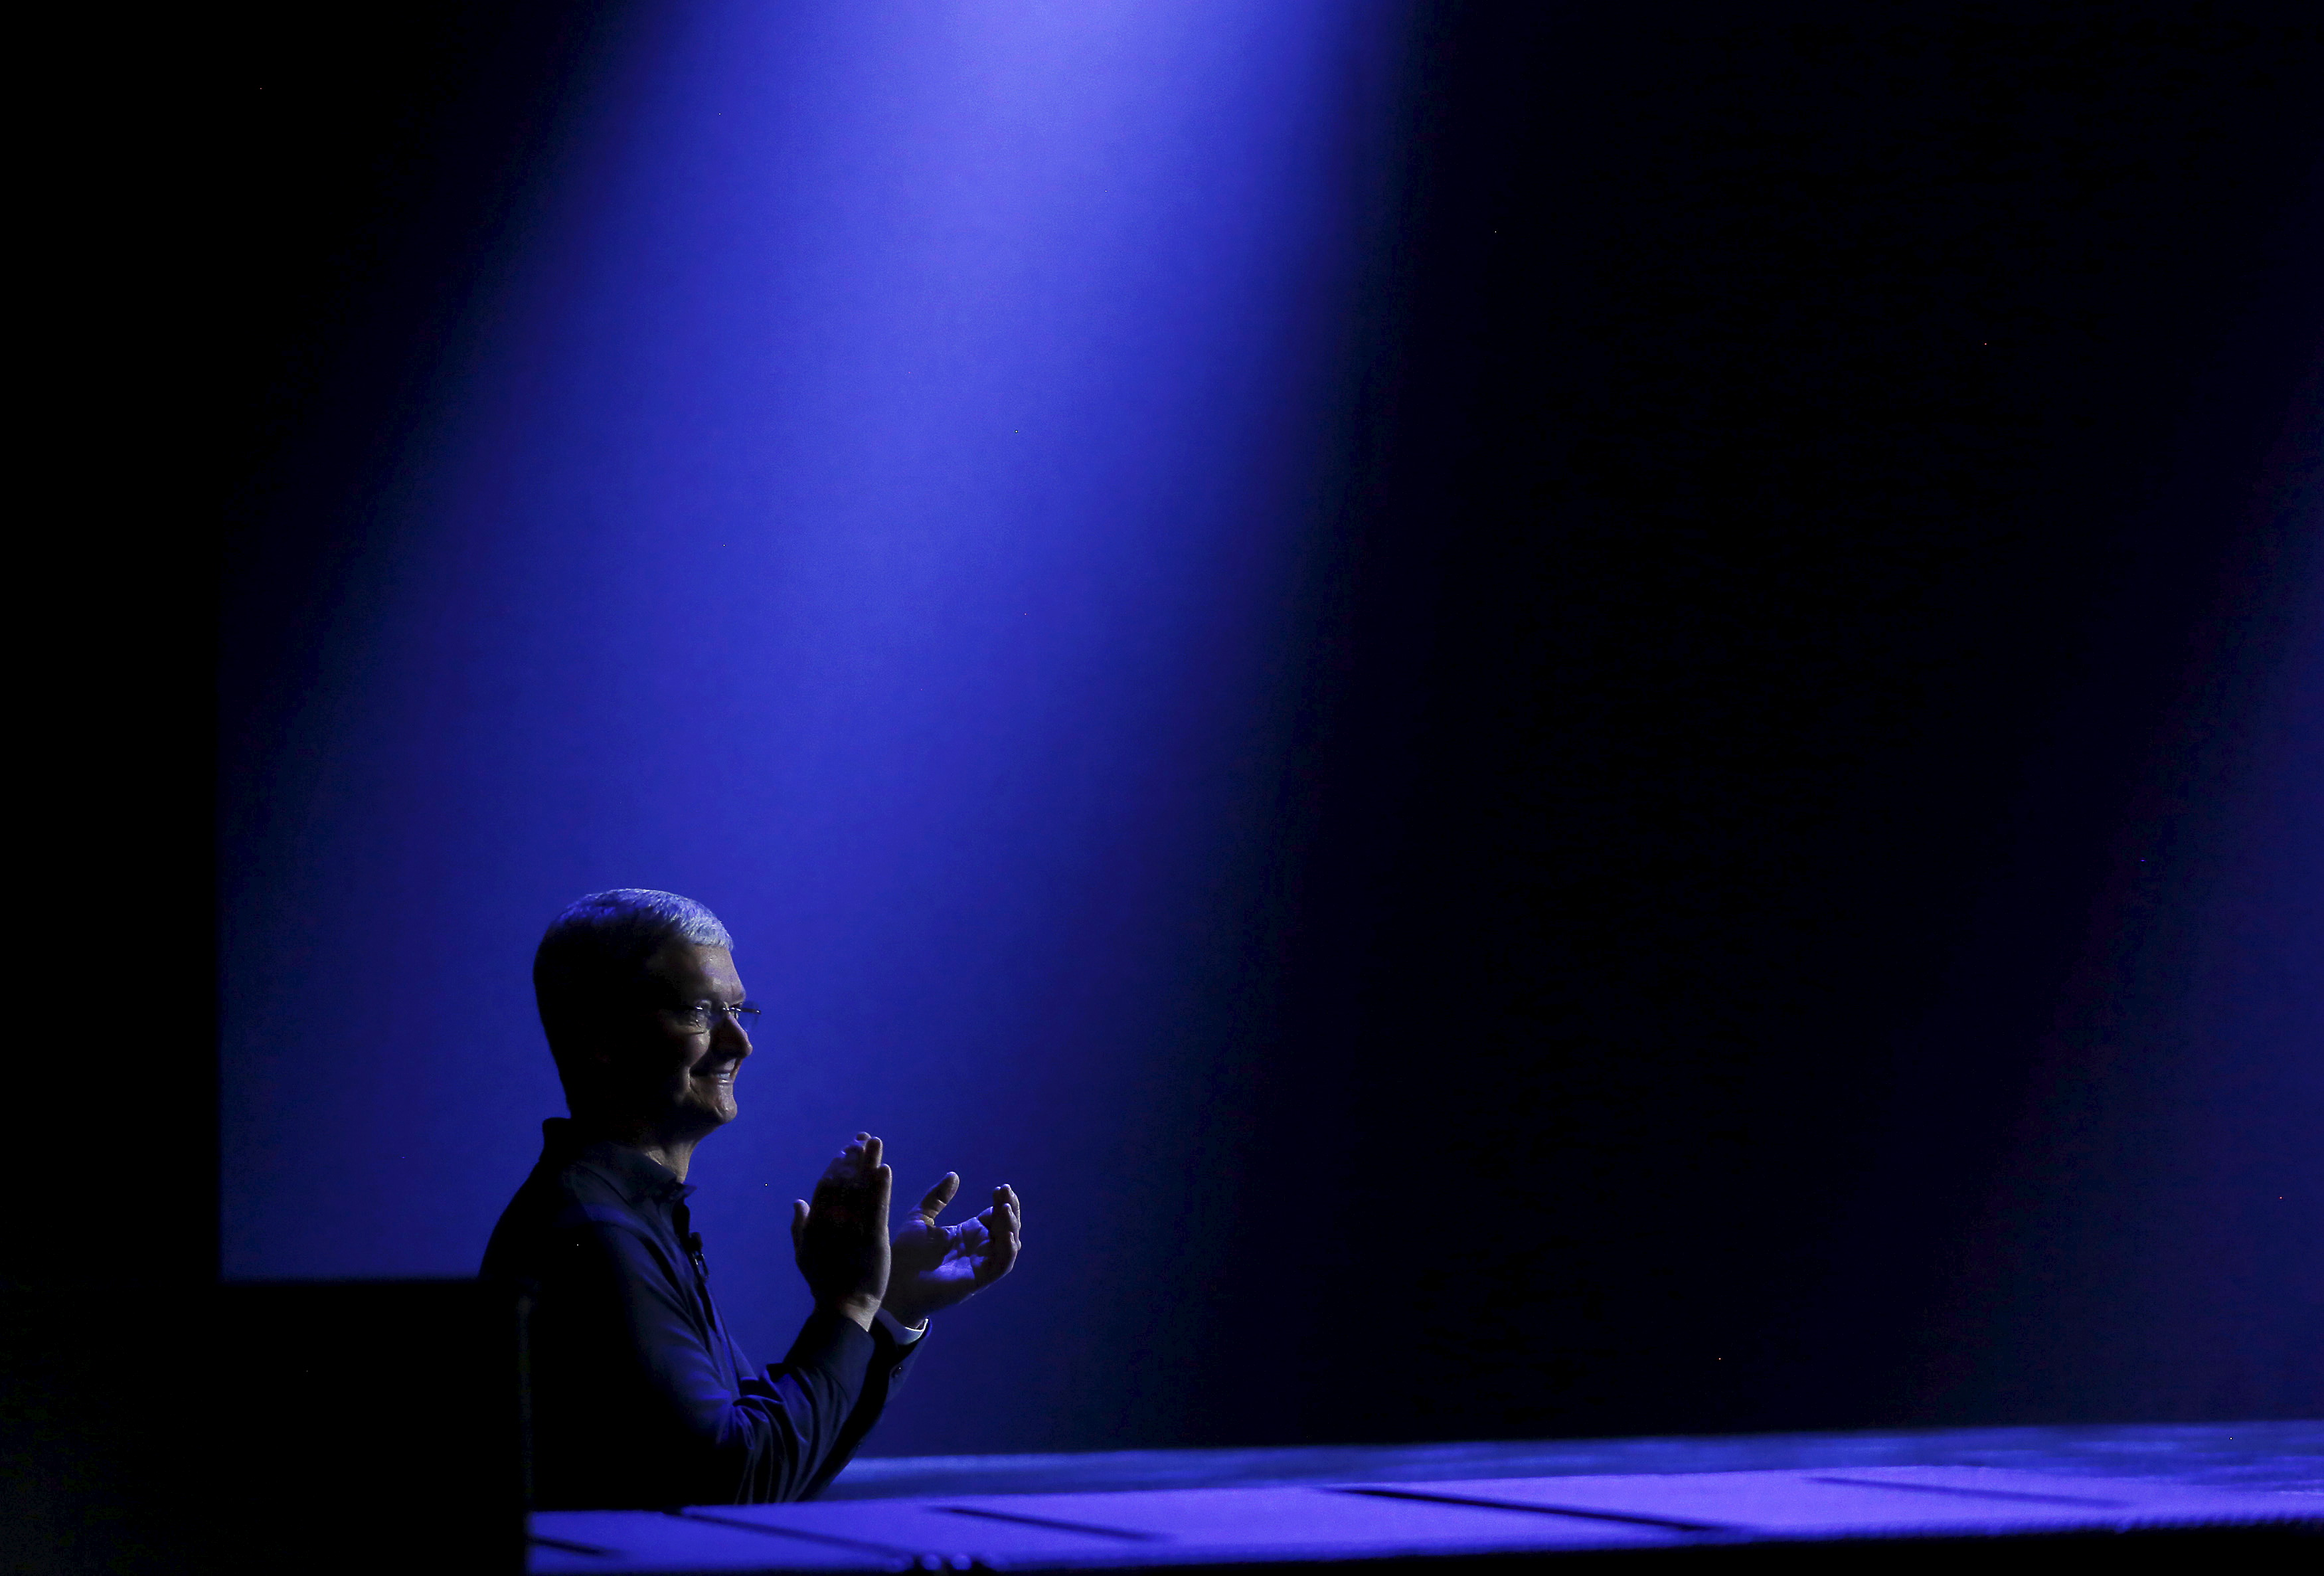 Apple CEO Tim Cook waits to return to stage during his keynote address at the Worldwide Developers Conference in San Francisco, California June 8, 2015.